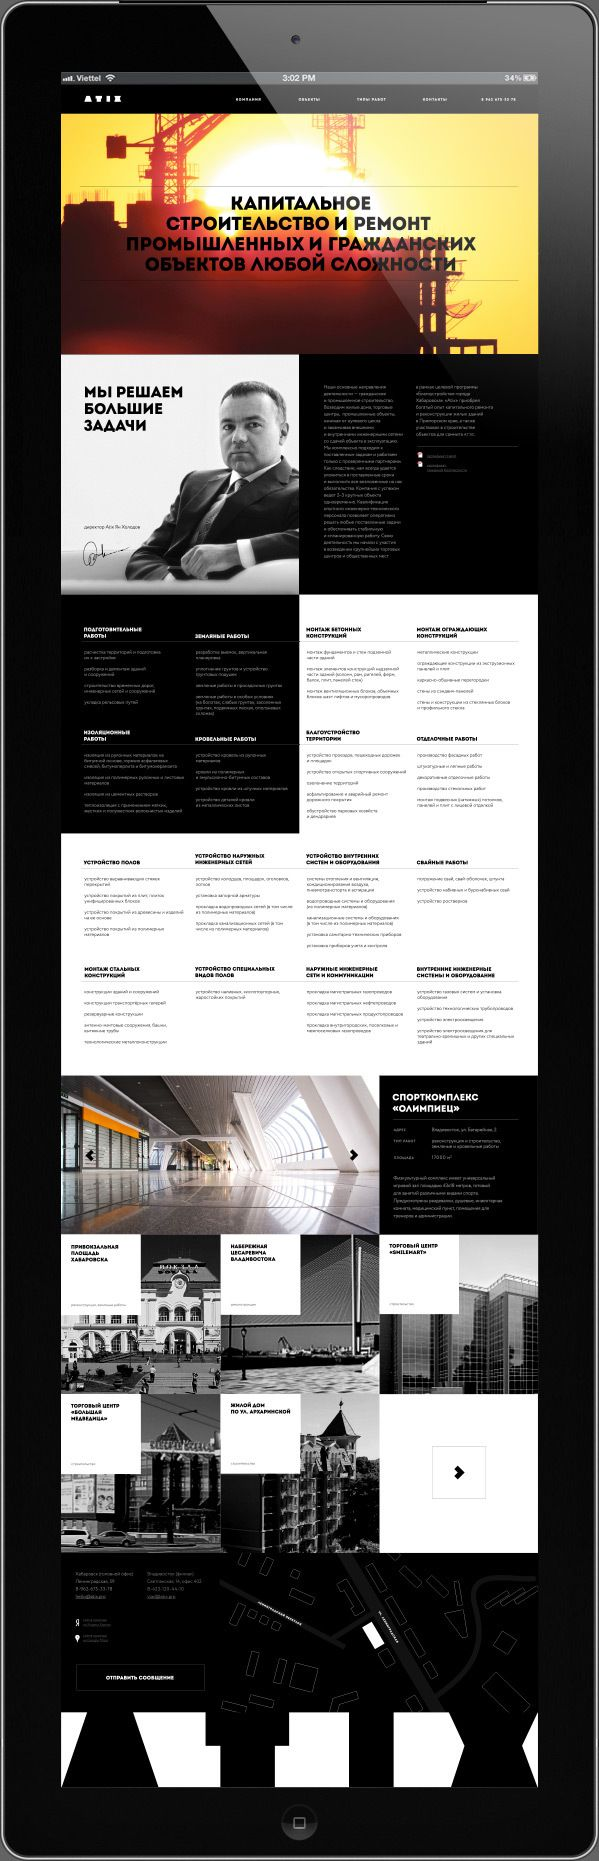 Atix capital development by Sergey Tarasenko, via Behance